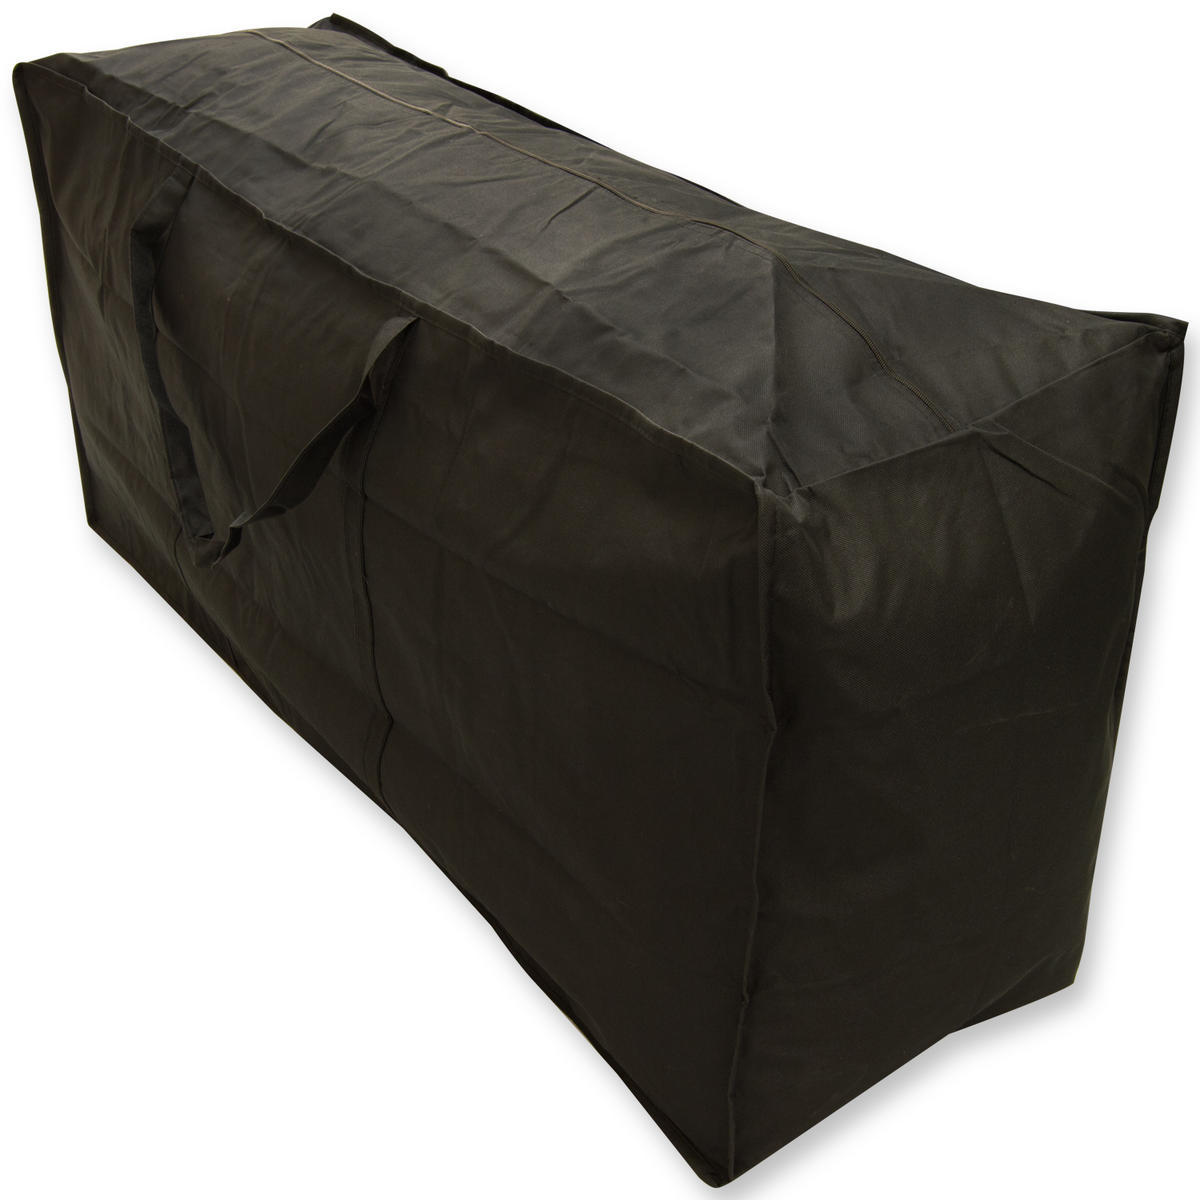 Woodside Furniture Cushion Storage Bag BLACK